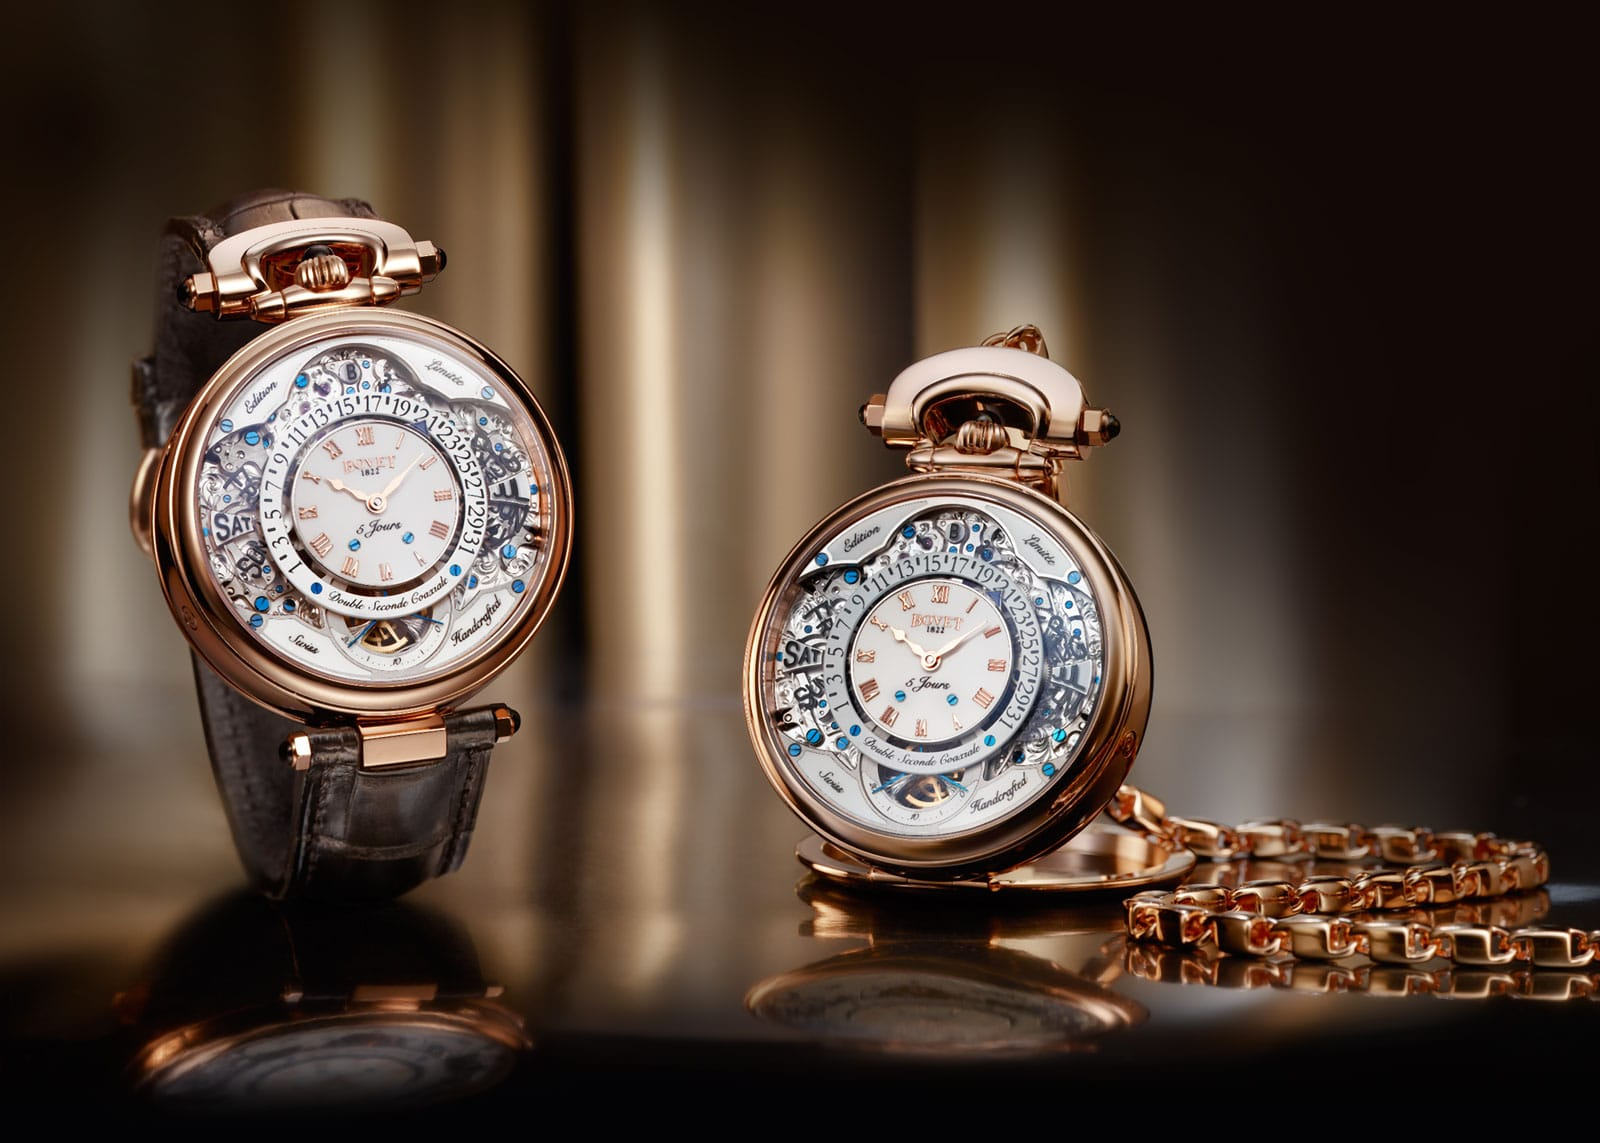 Turn back time with these luxury pocket watches